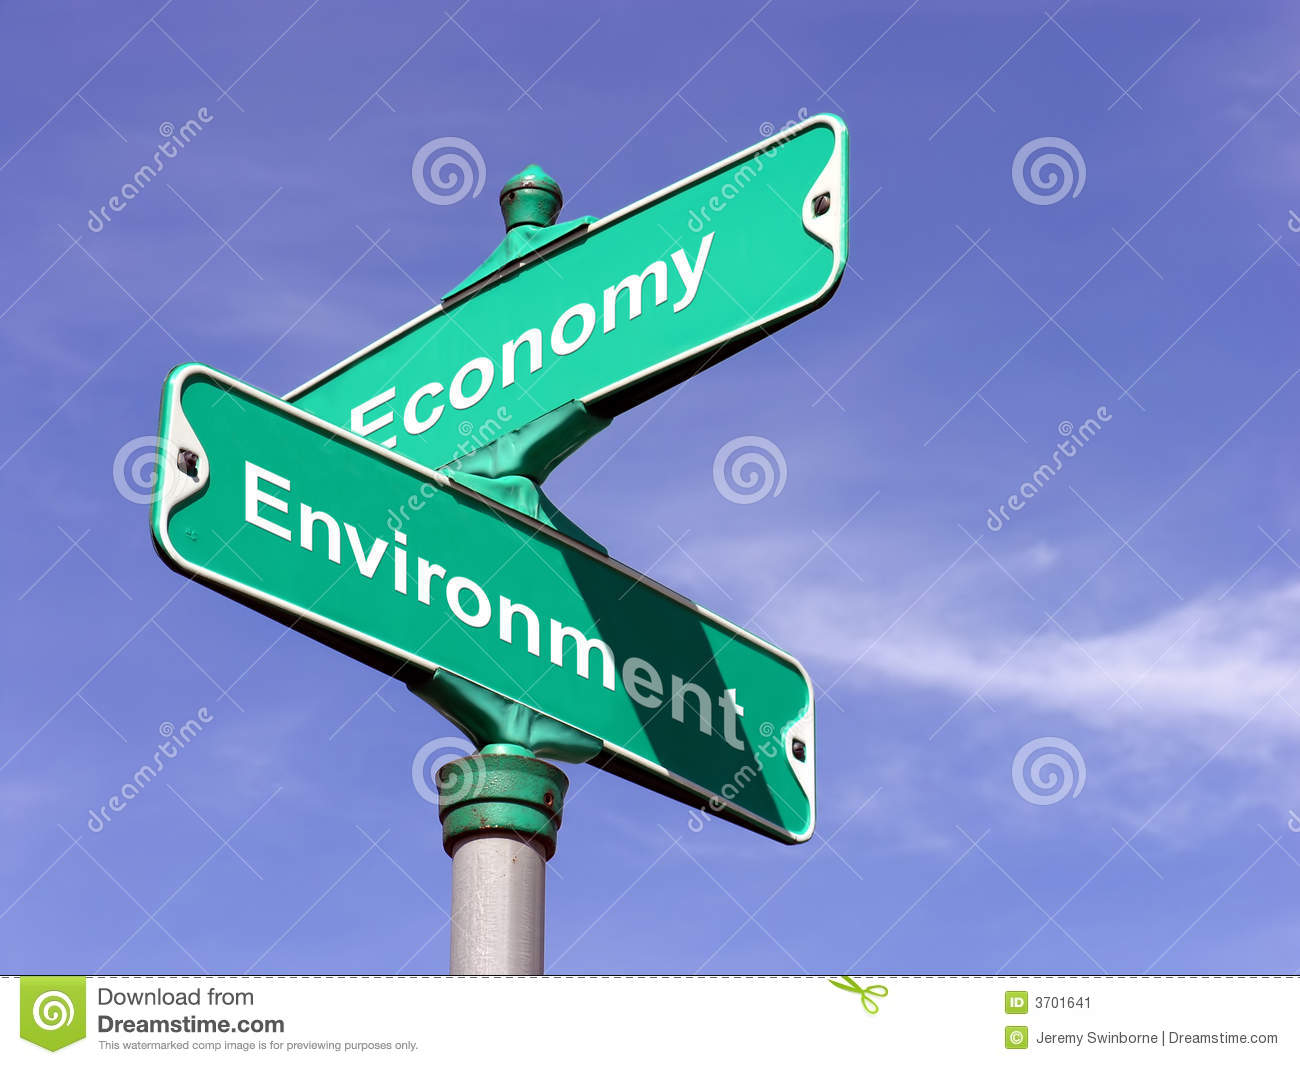 the economy vs the enviroment Canada is blessed with an abundance of oil and gas, the jobs that go with it, and the potential for hundreds of billions of dollars in investment.